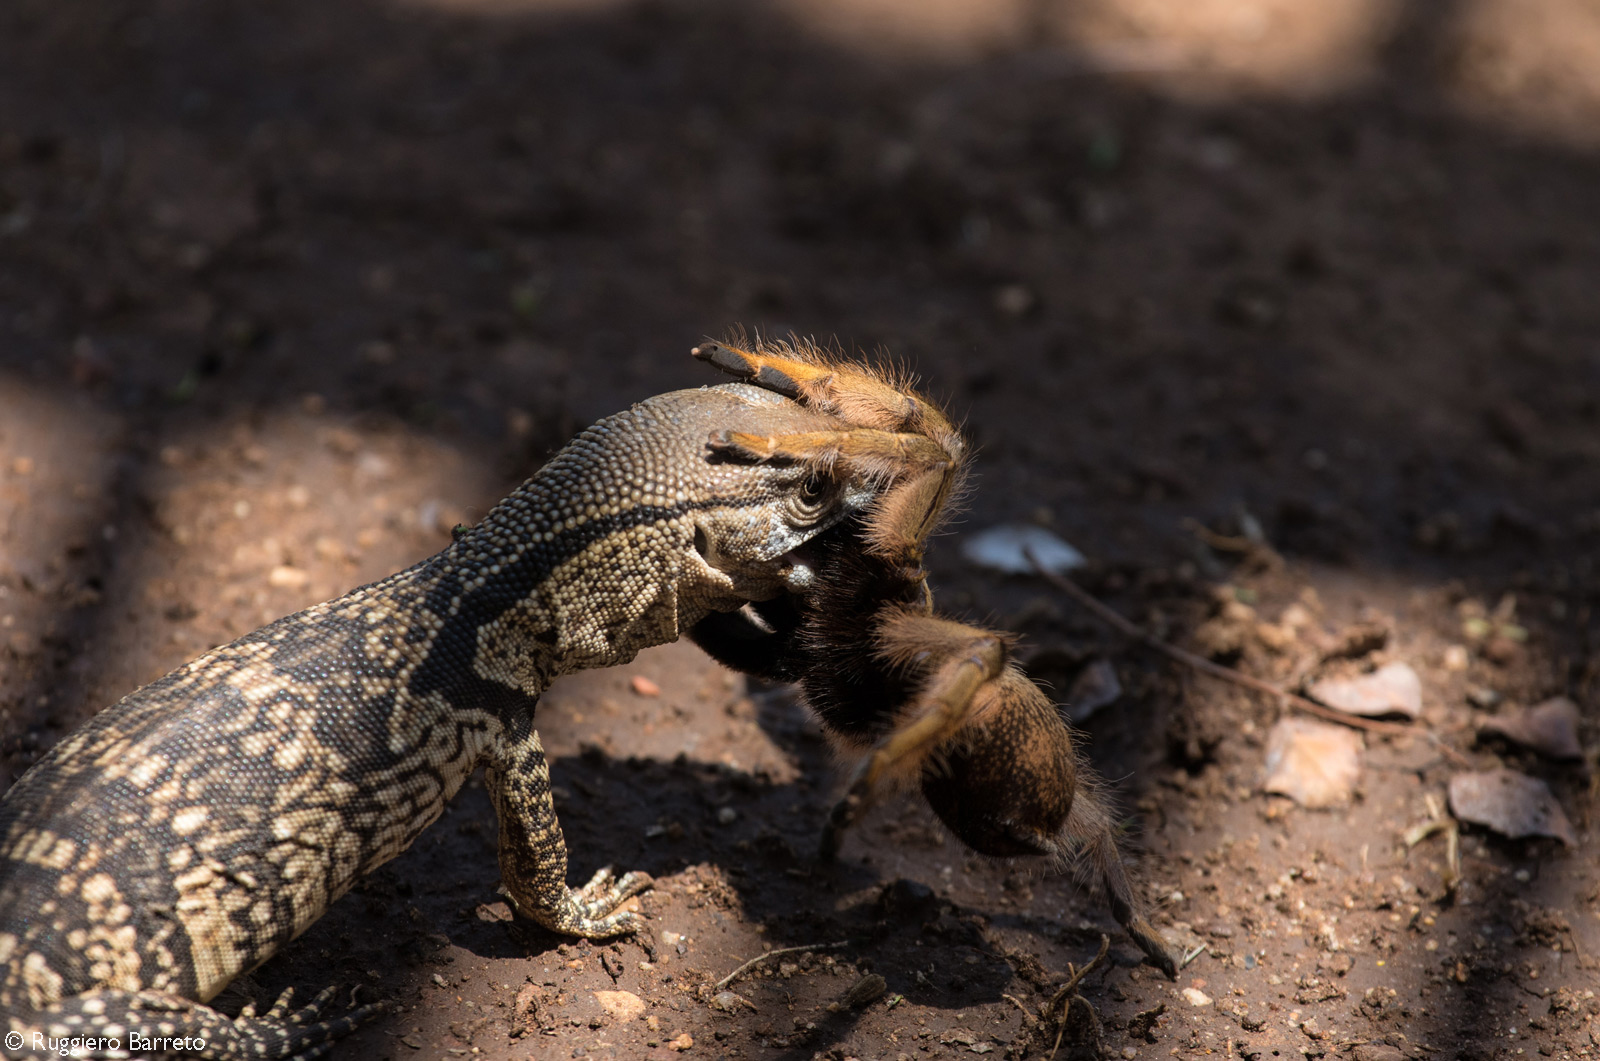 A battle between a small monitor lizard and a baboon spider. After about 15 minutes the lizard eventually took control and overpowered the spider and carried it off. Kruger National Park, South Africa © Ruggiero Barreto